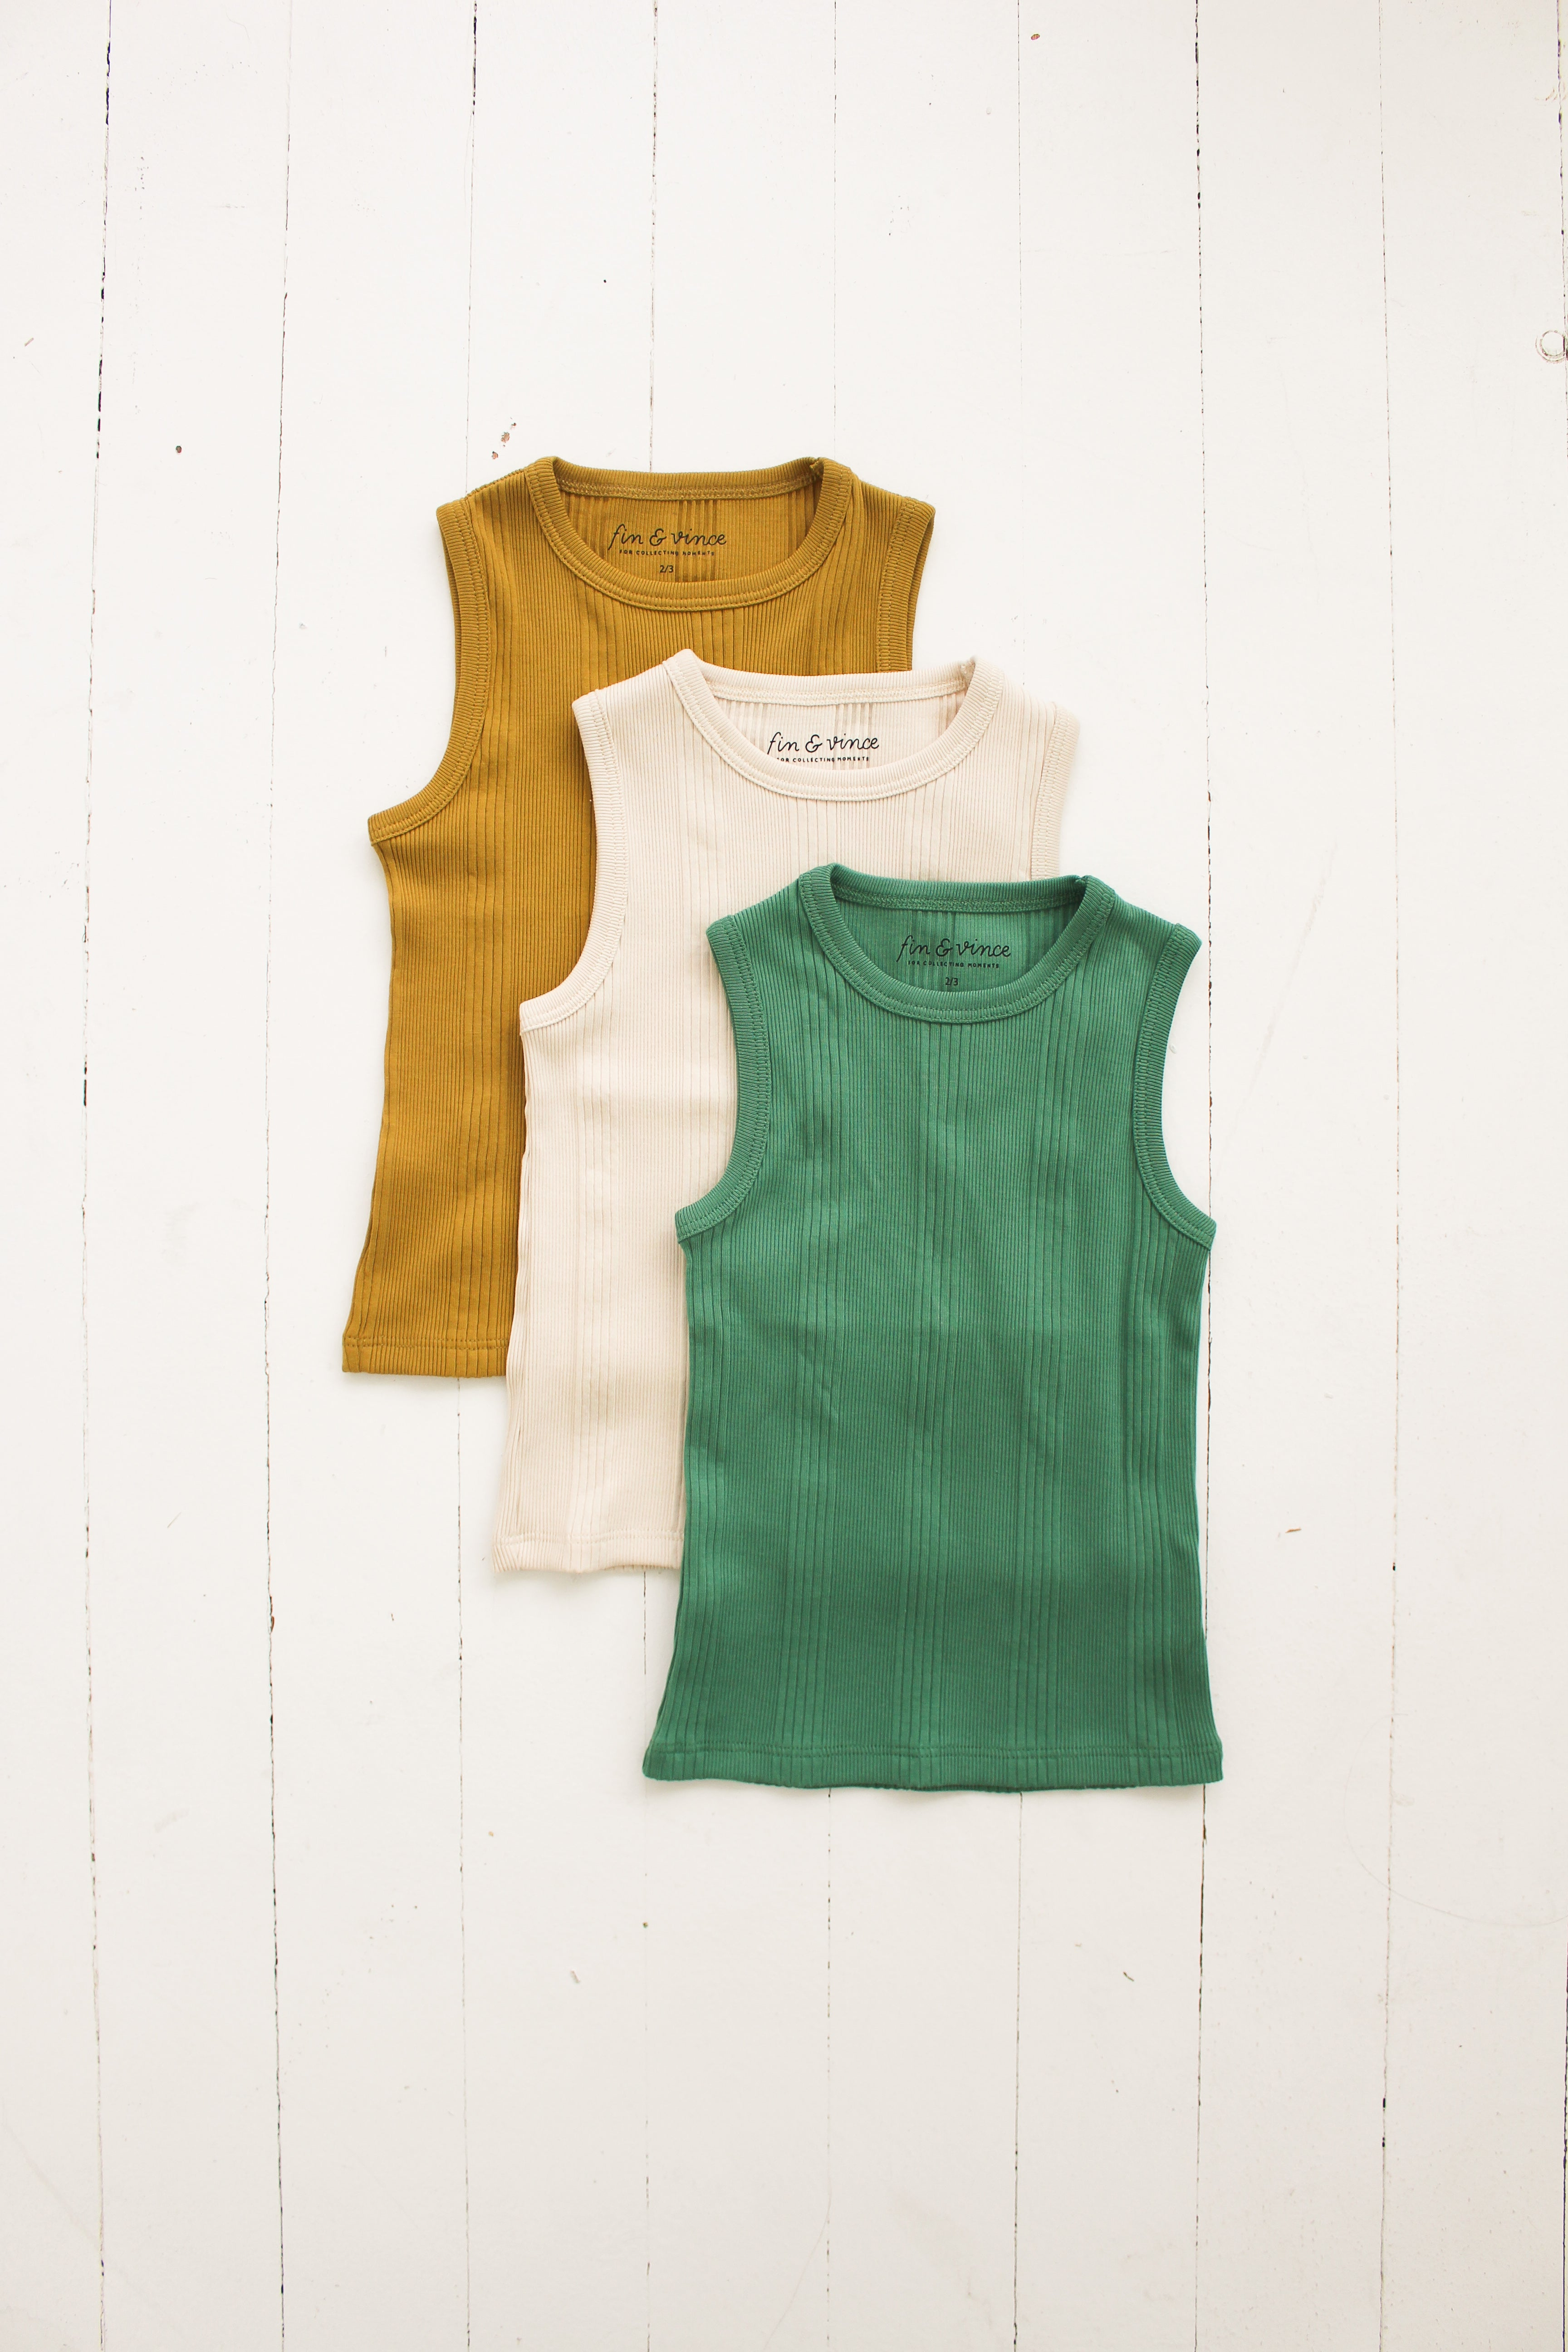 Fin and Vince - Singlet Tank (Schoolhouse Green) - Last 12/24